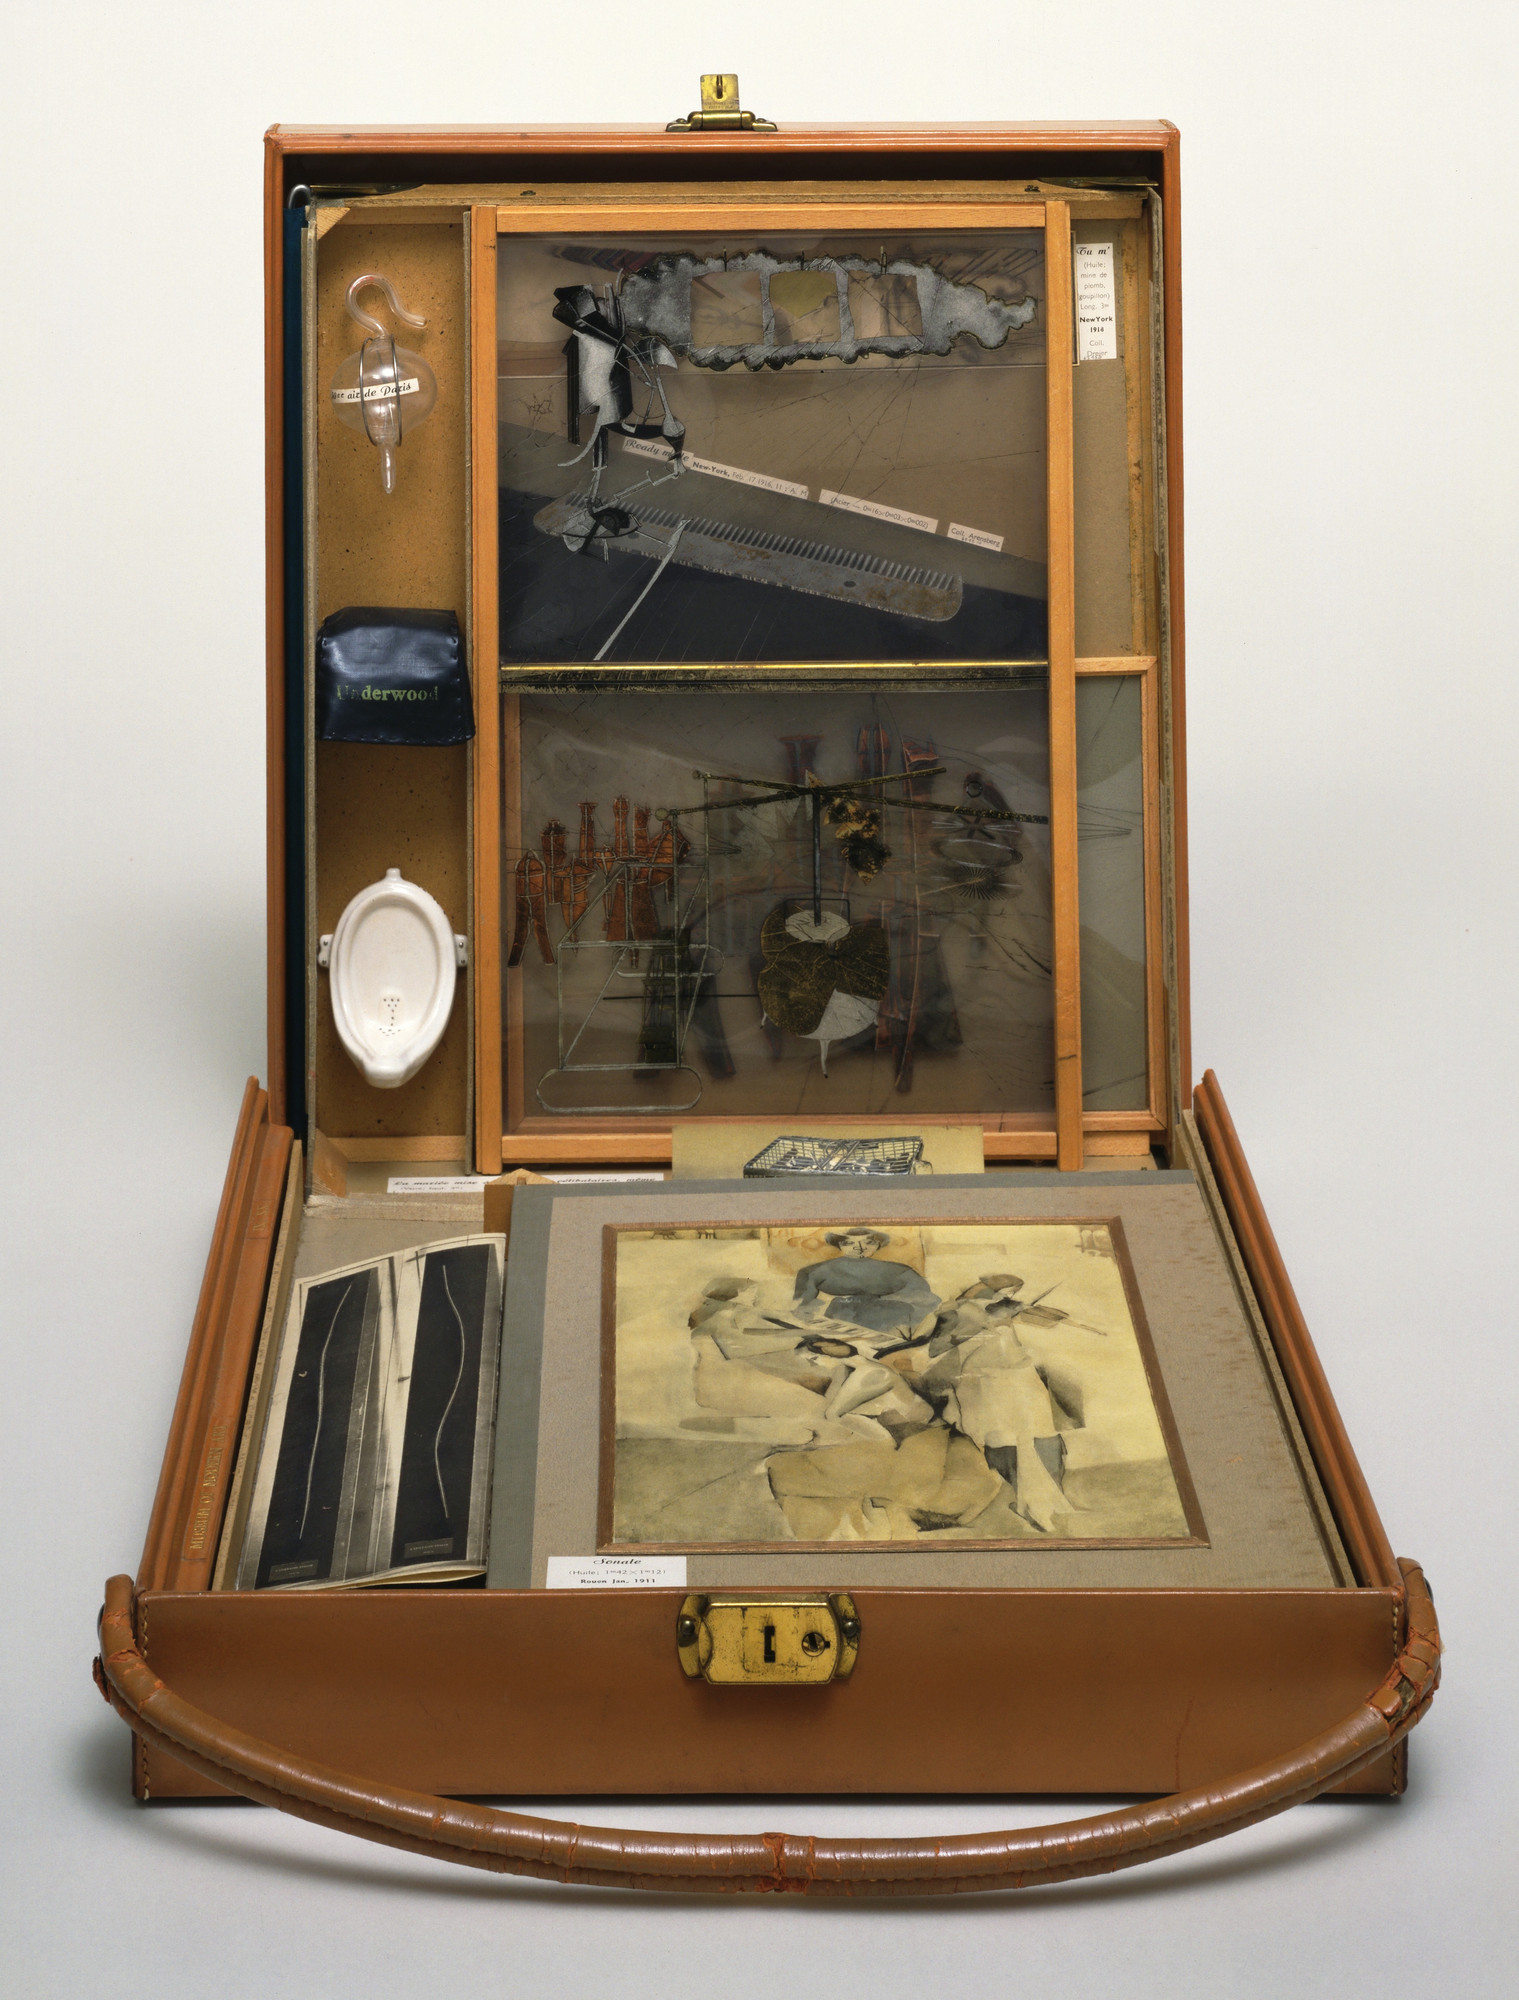 Marcel Duchamp. Box in a Valise (From or by Marcel Duchamp or Rrose  Sélavy). 1935-41 | MoMA